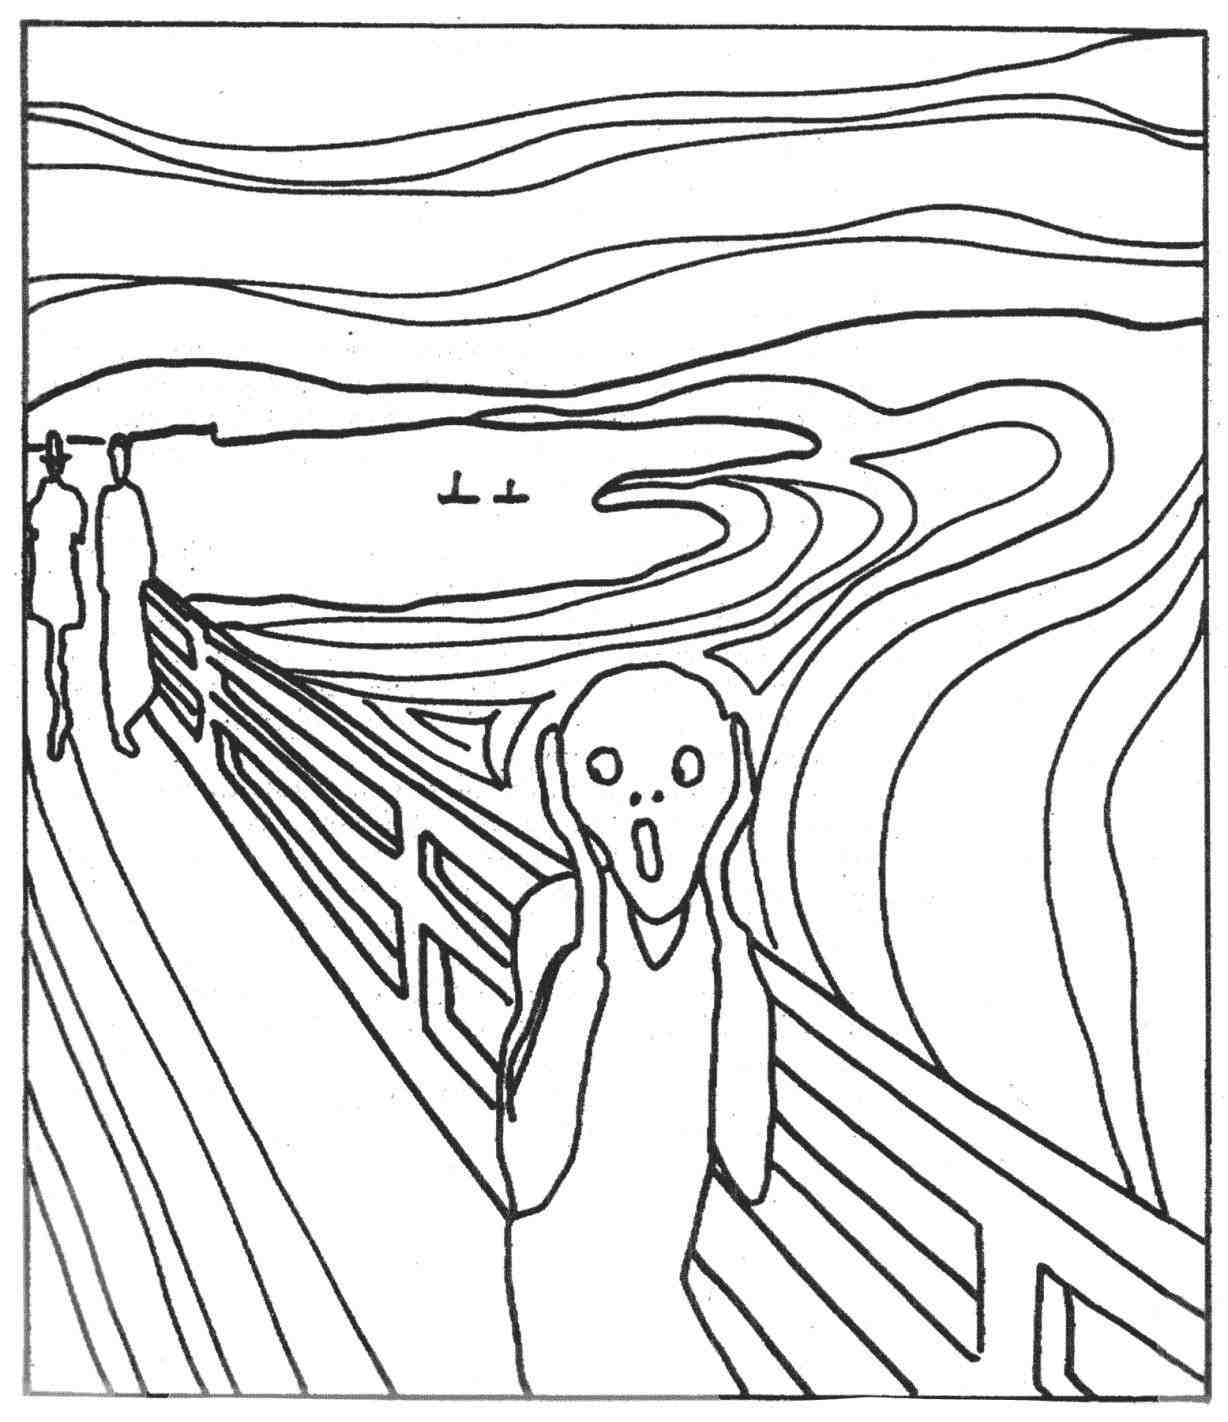 1228x1422 The Scream Painting Black And White